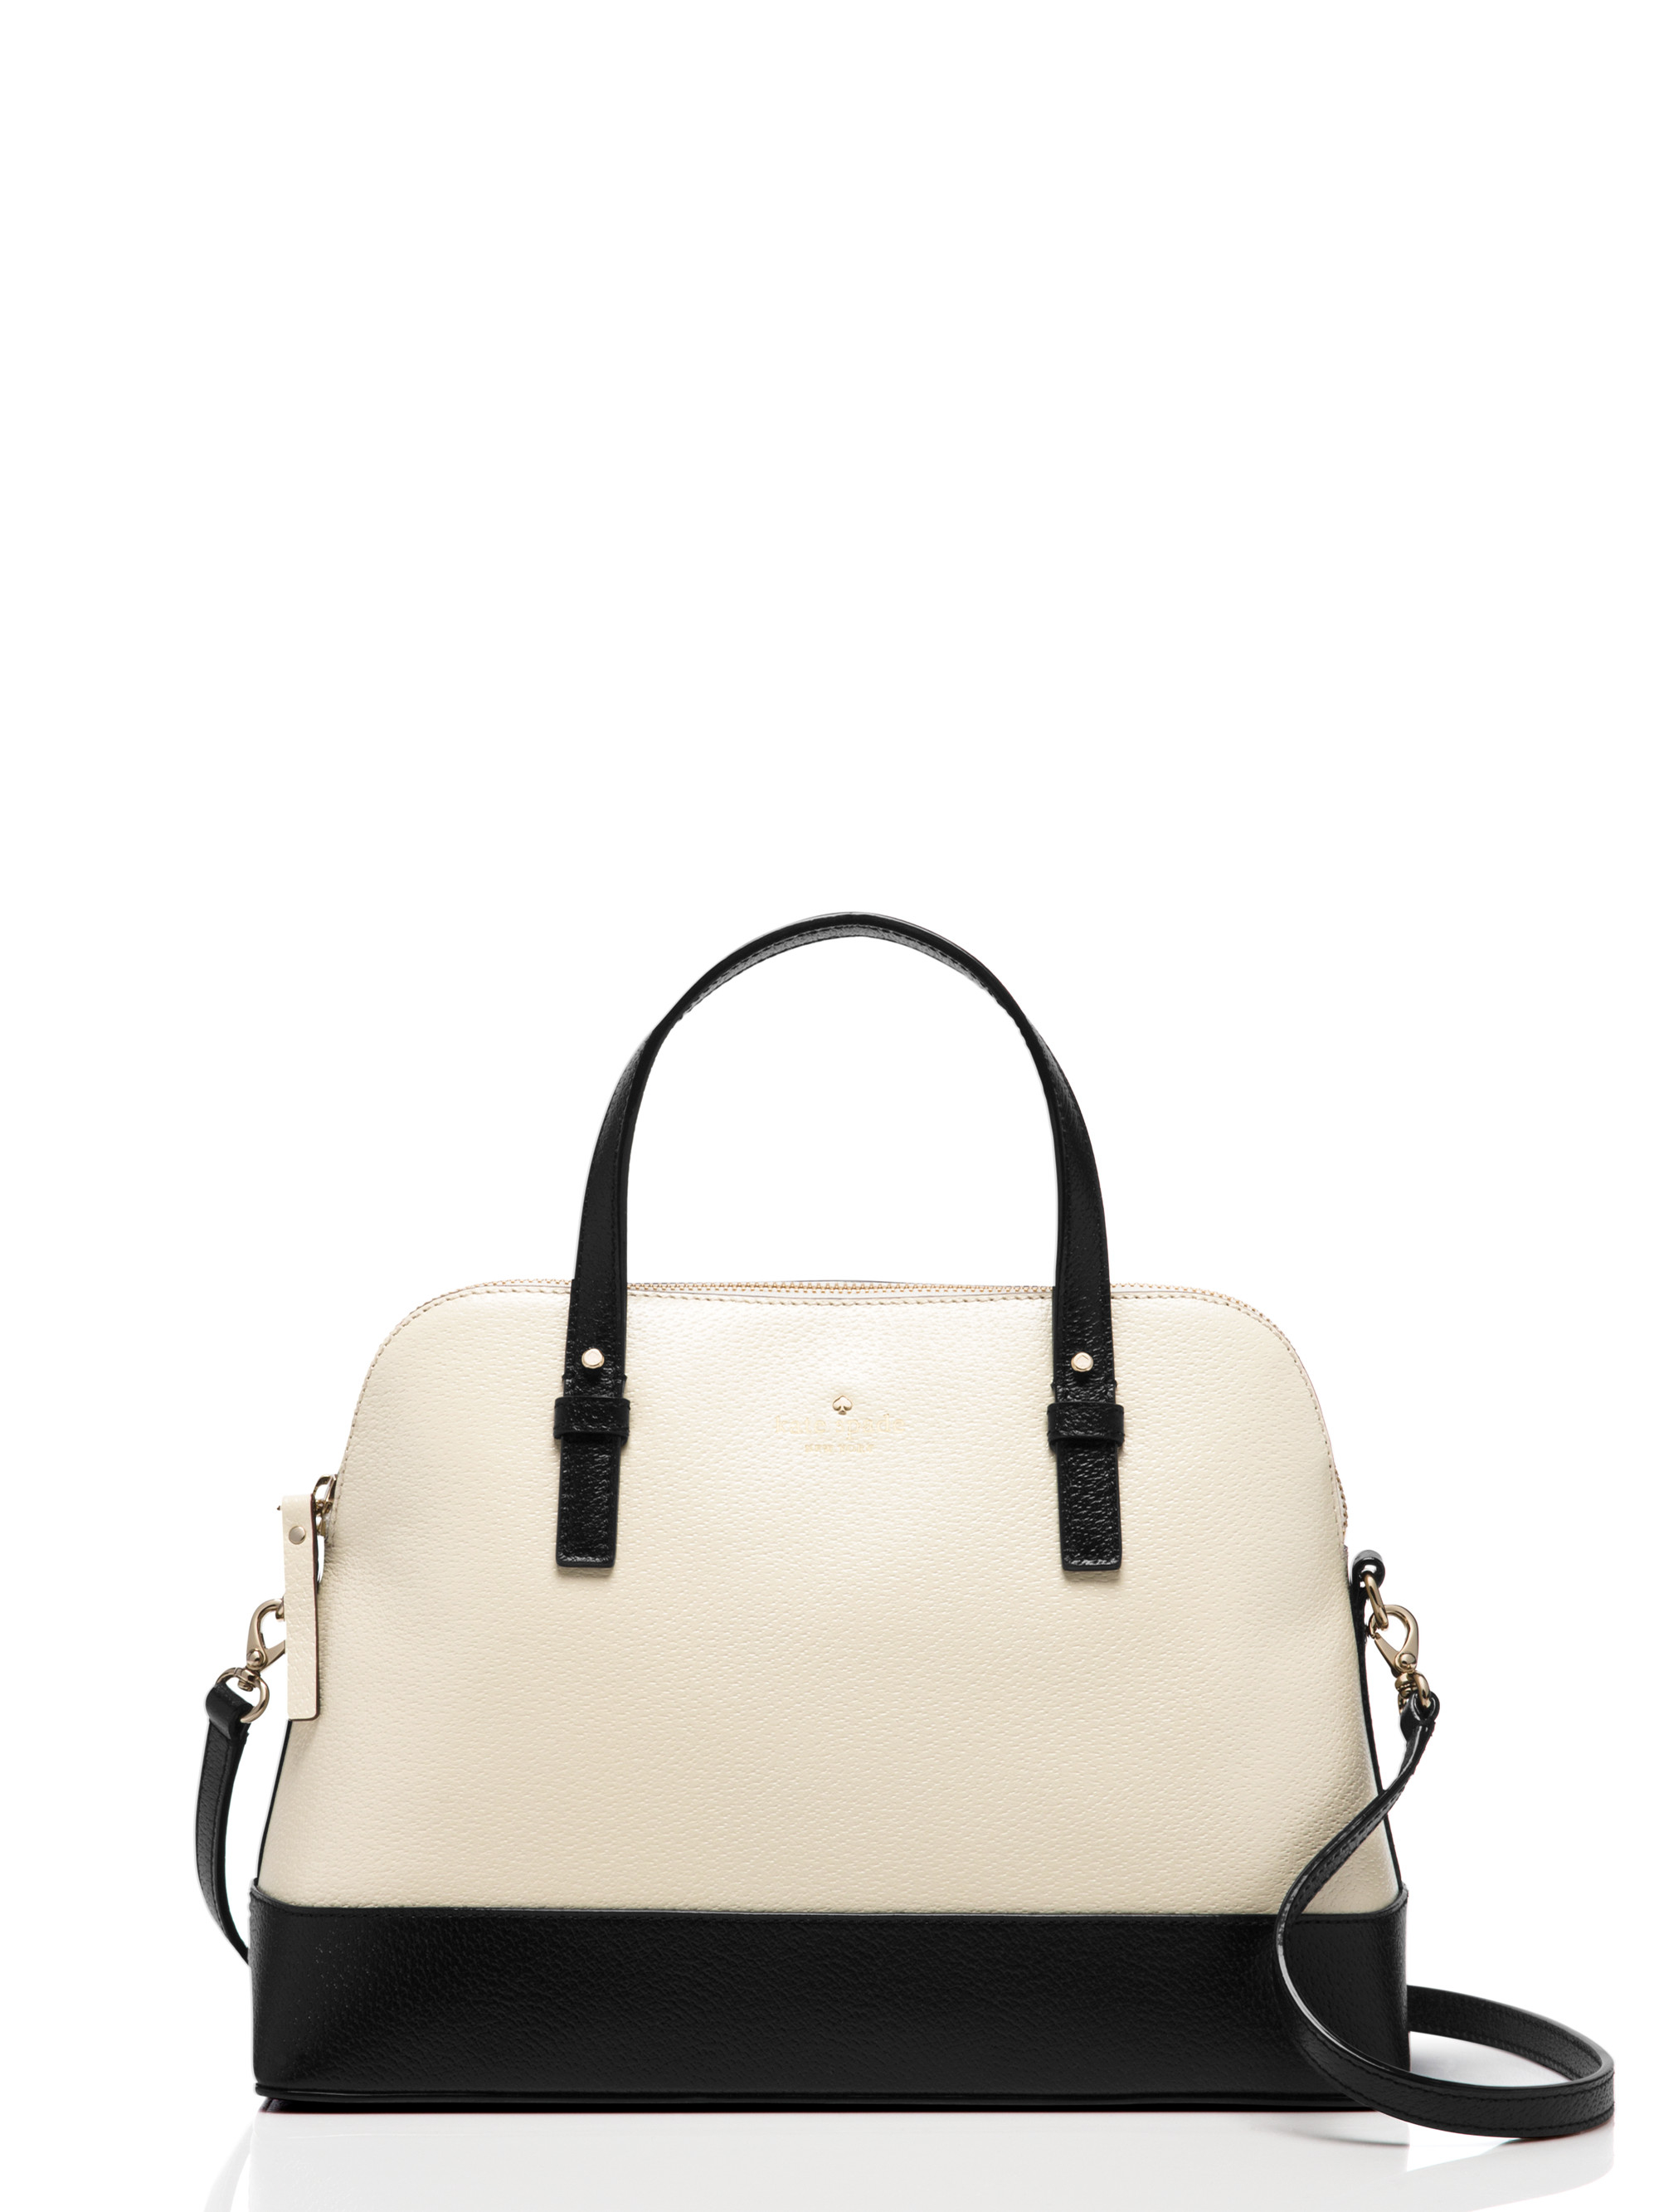 Lyst - Kate Spade Grand Street Colorblock Small Rachelle in Natural 781028516876b